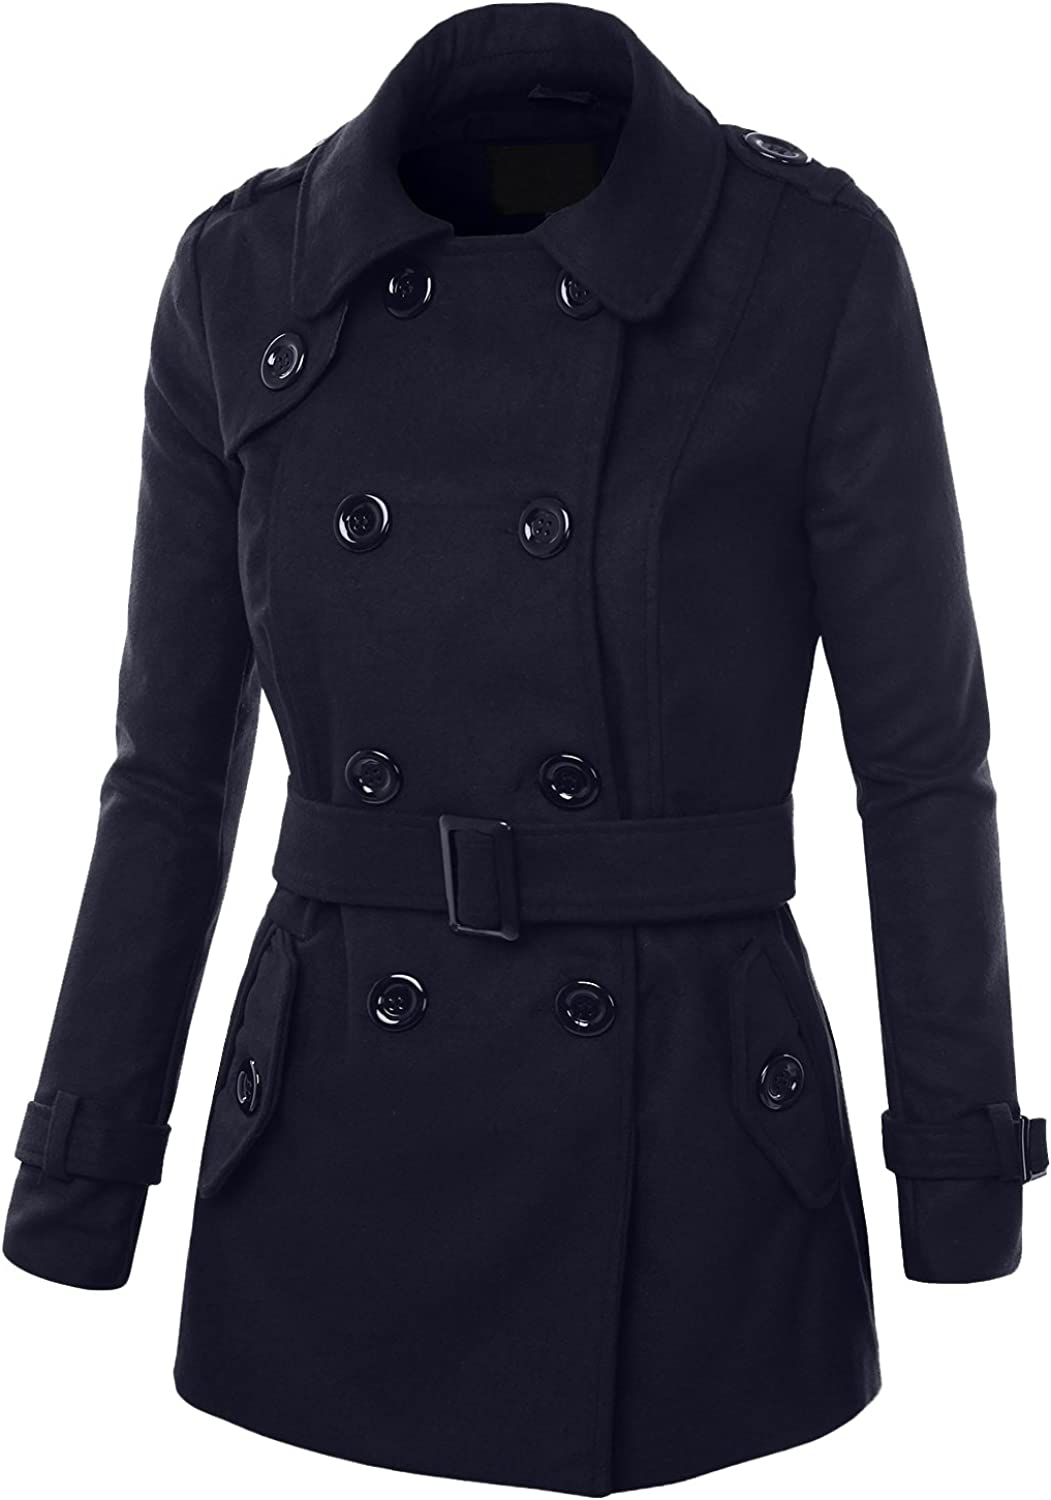 Womens Coat Curve Double Breasted Belted Coat 4 Button 2 Pocket Collared Jacket